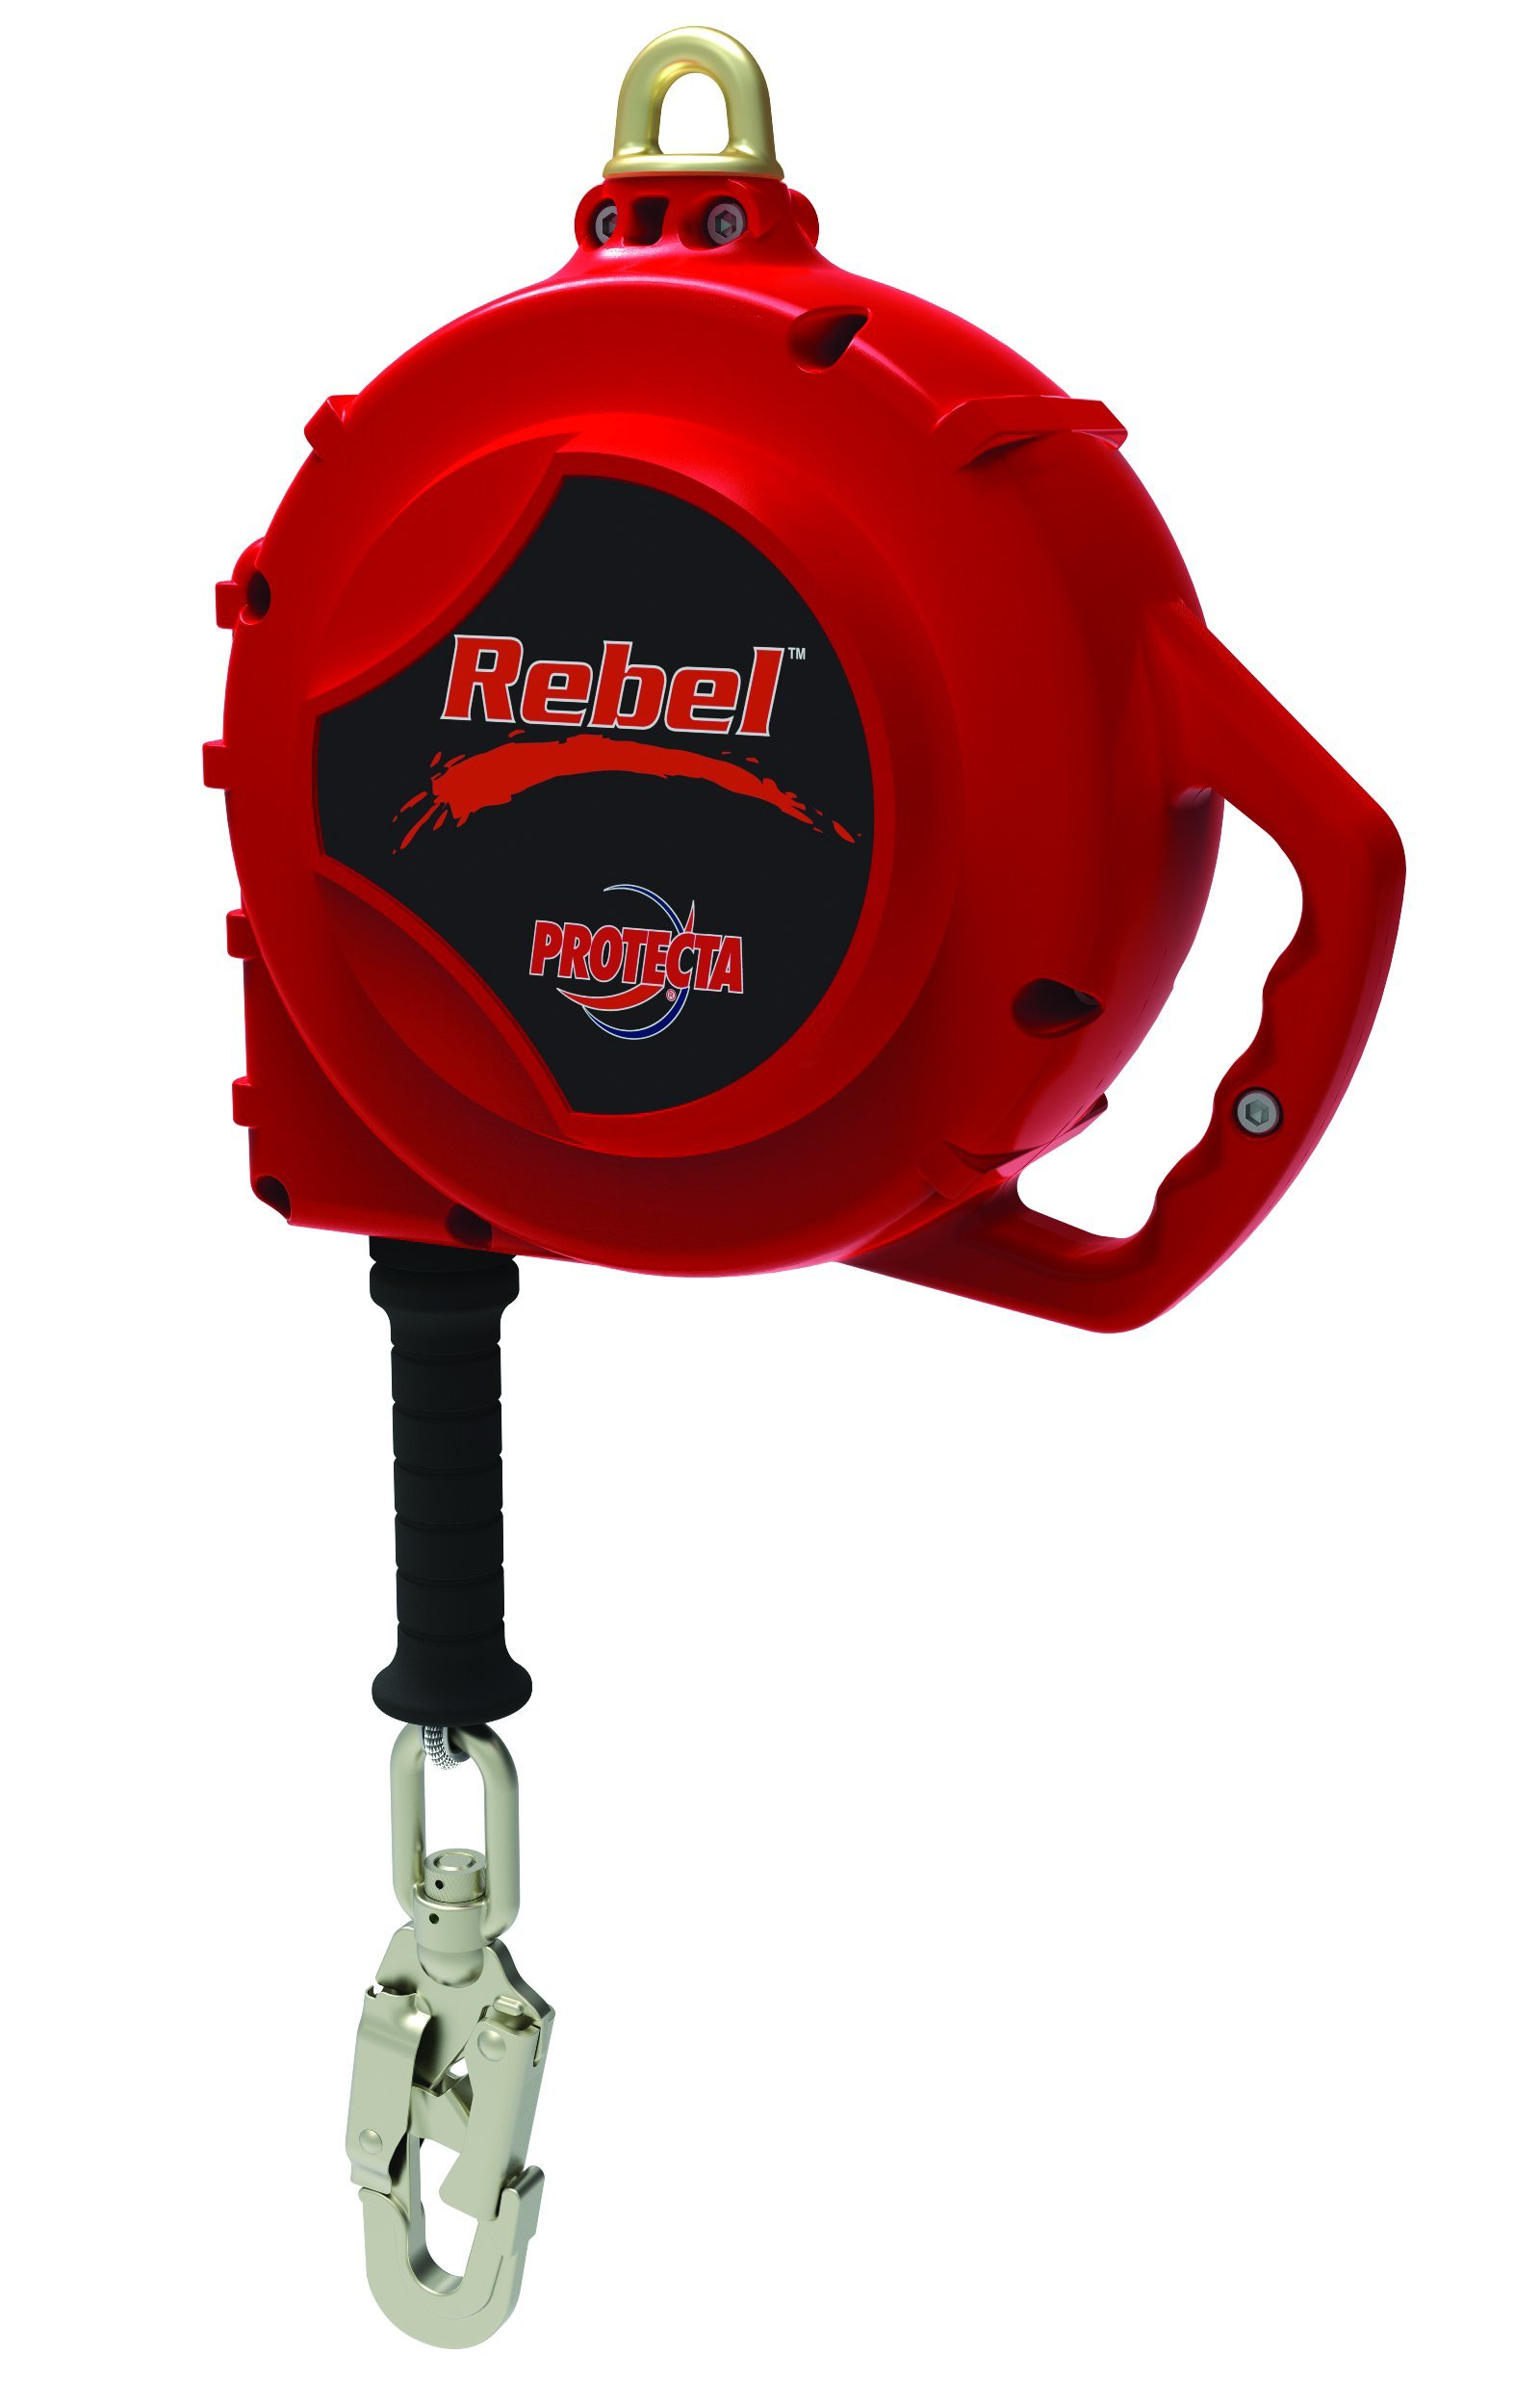 3M Protecta Rebel 3590550 Self Retracting Lifeline, 50' Galvanized Cable, Thermoplastic Housing, Carabiner, 420 lb Capacity, Red by 3M Personal Protective Equipment